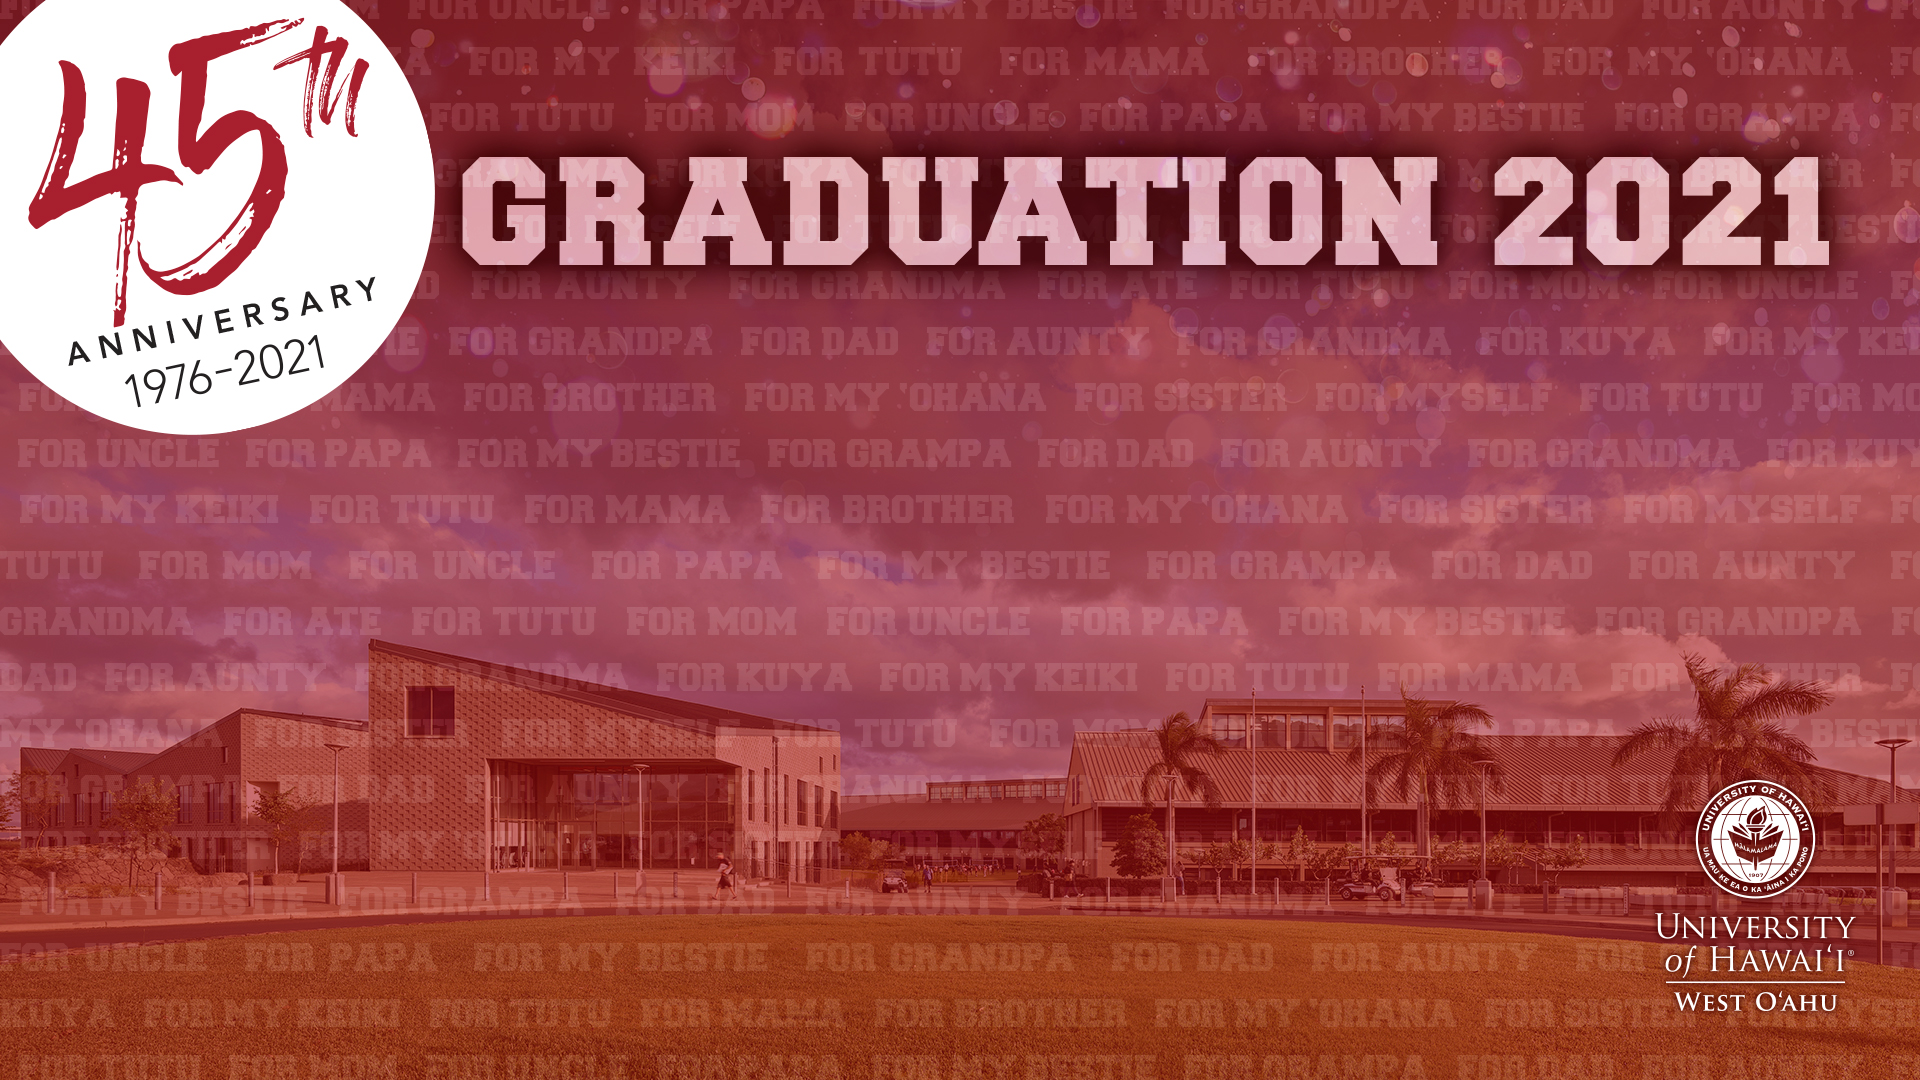 Graduation 2021 Graphic For A Zoom Background.